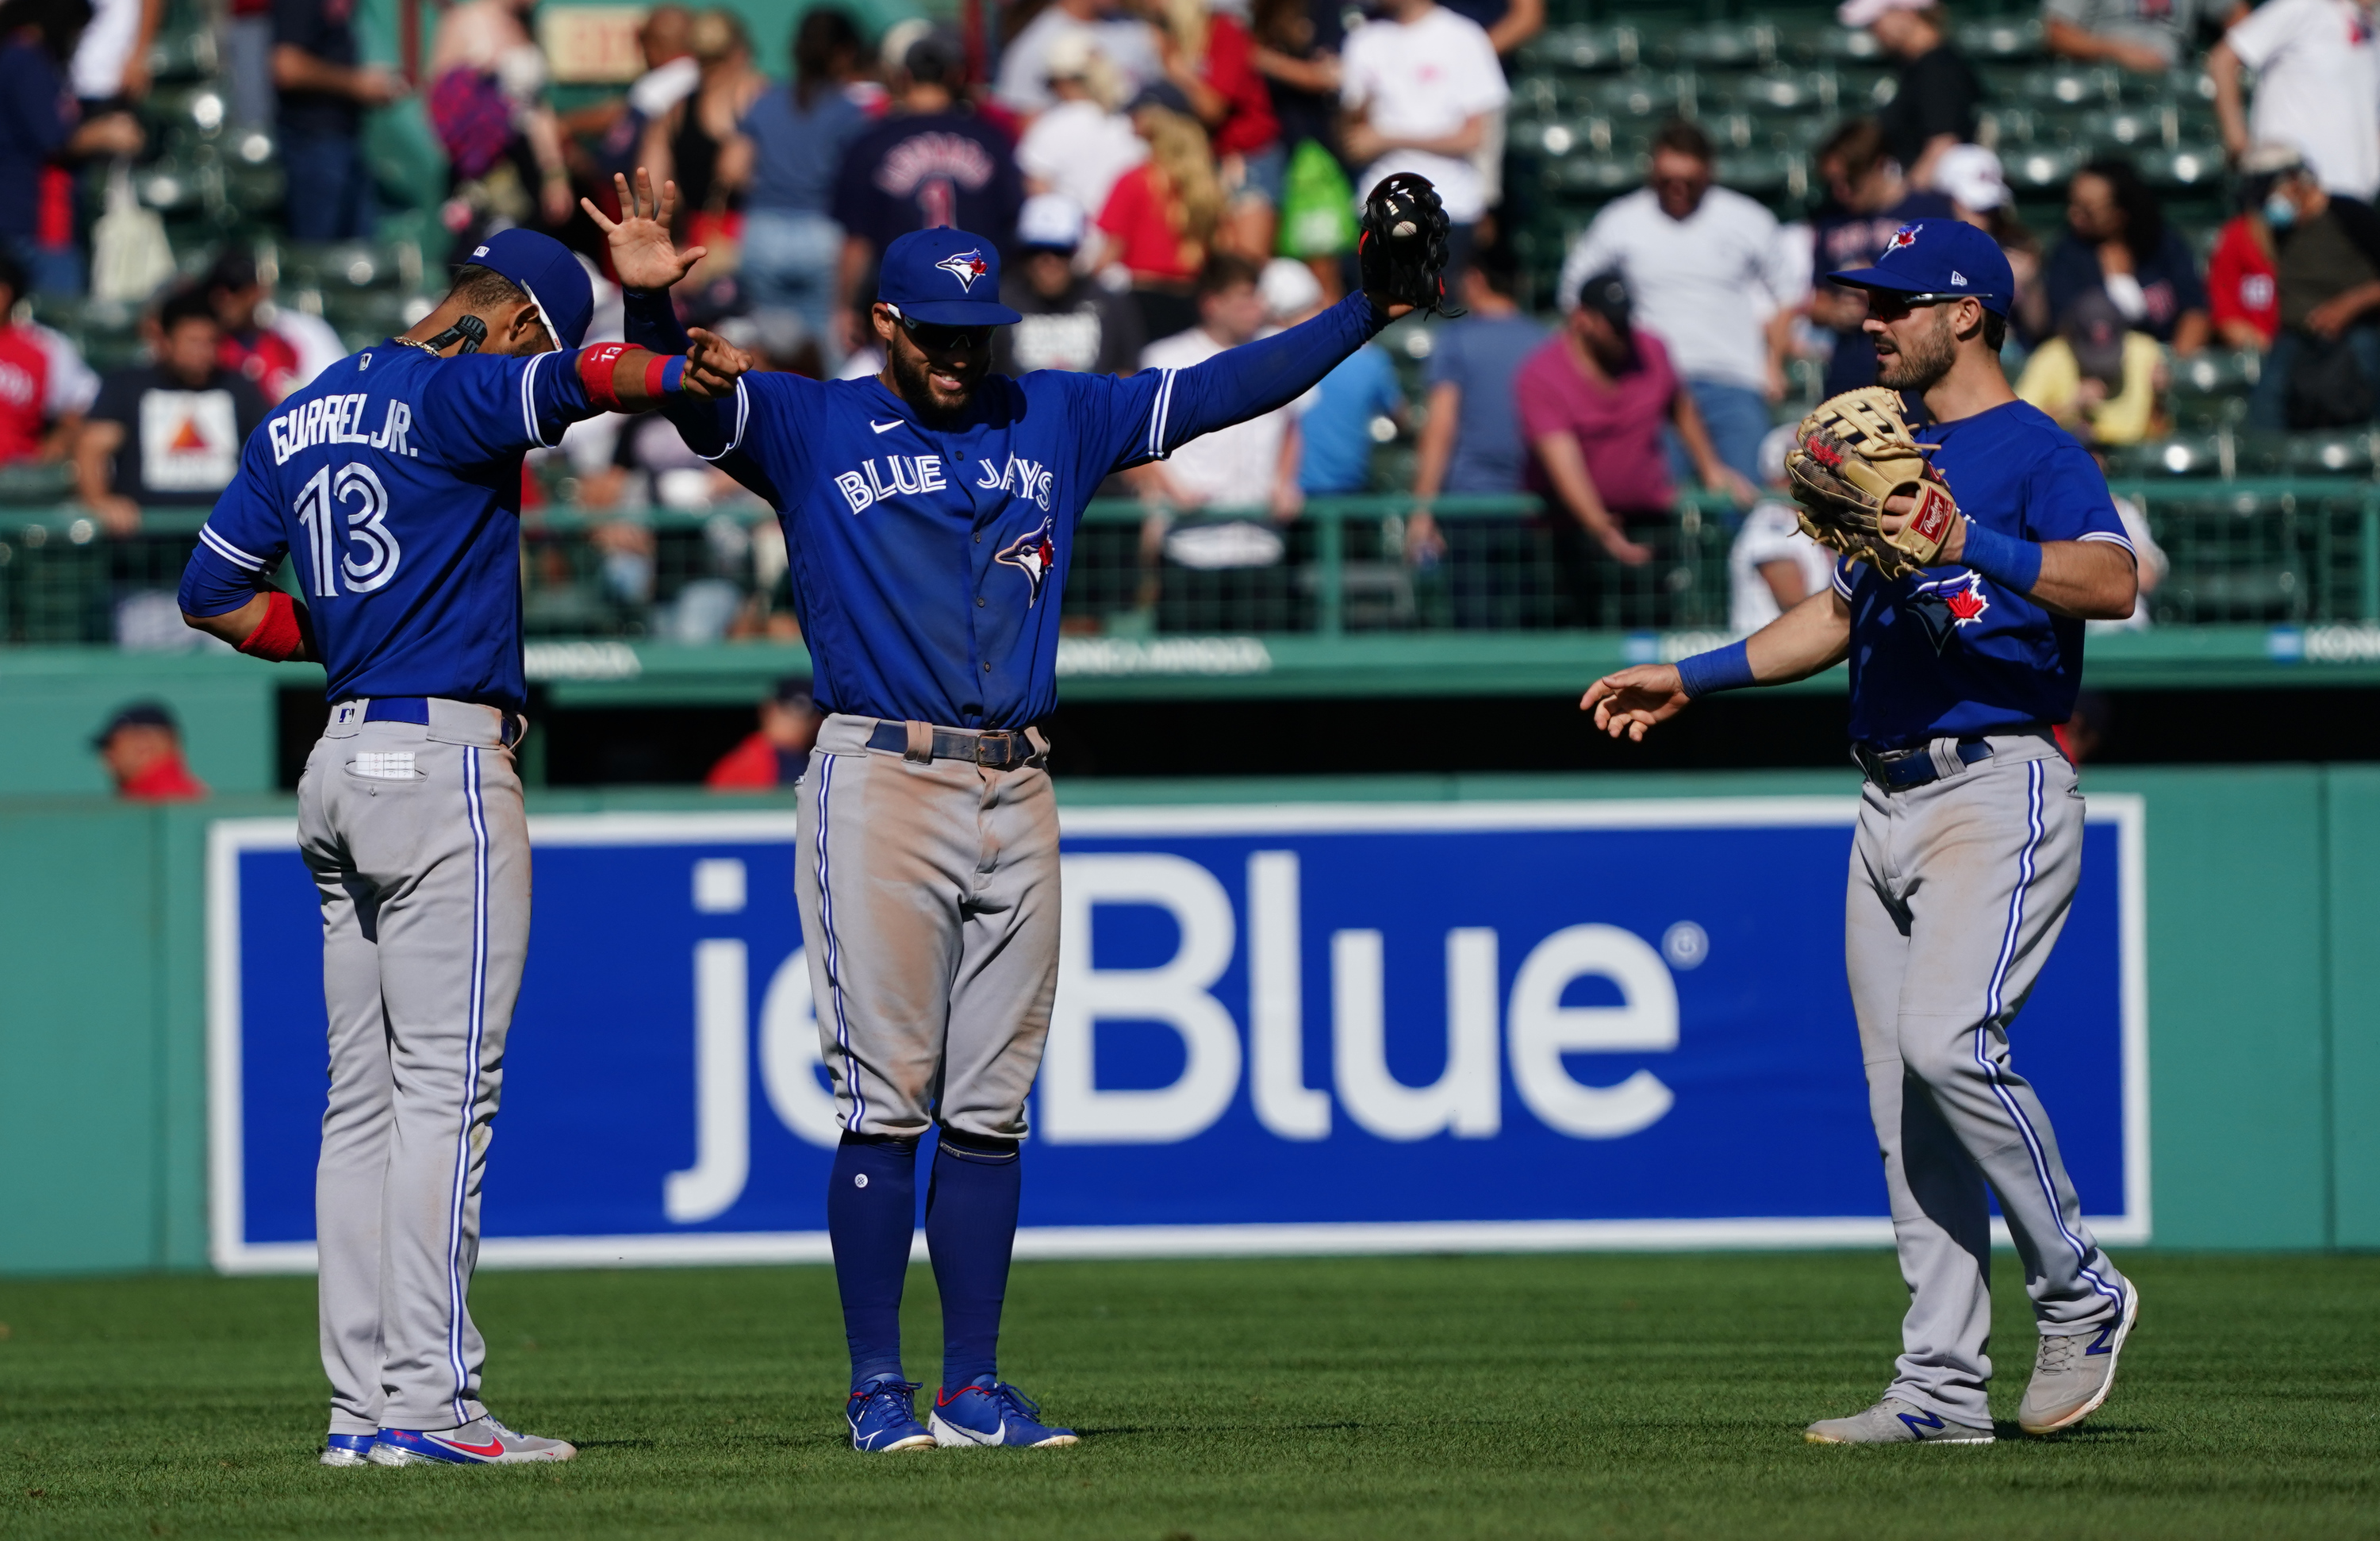 Jul 28, 2021; Boston, Massachusetts, USA; Toronto Blue Jays left fielder Lourdes Gurriel Jr. (13) and center fielder George Springer (4) and right fielder Randal Grichuk (15) celebrate after defeating the Boston Red Sox in the seventh inning of a double header at Fenway Park. Mandatory Credit: David Butler II-USA TODAY Sports